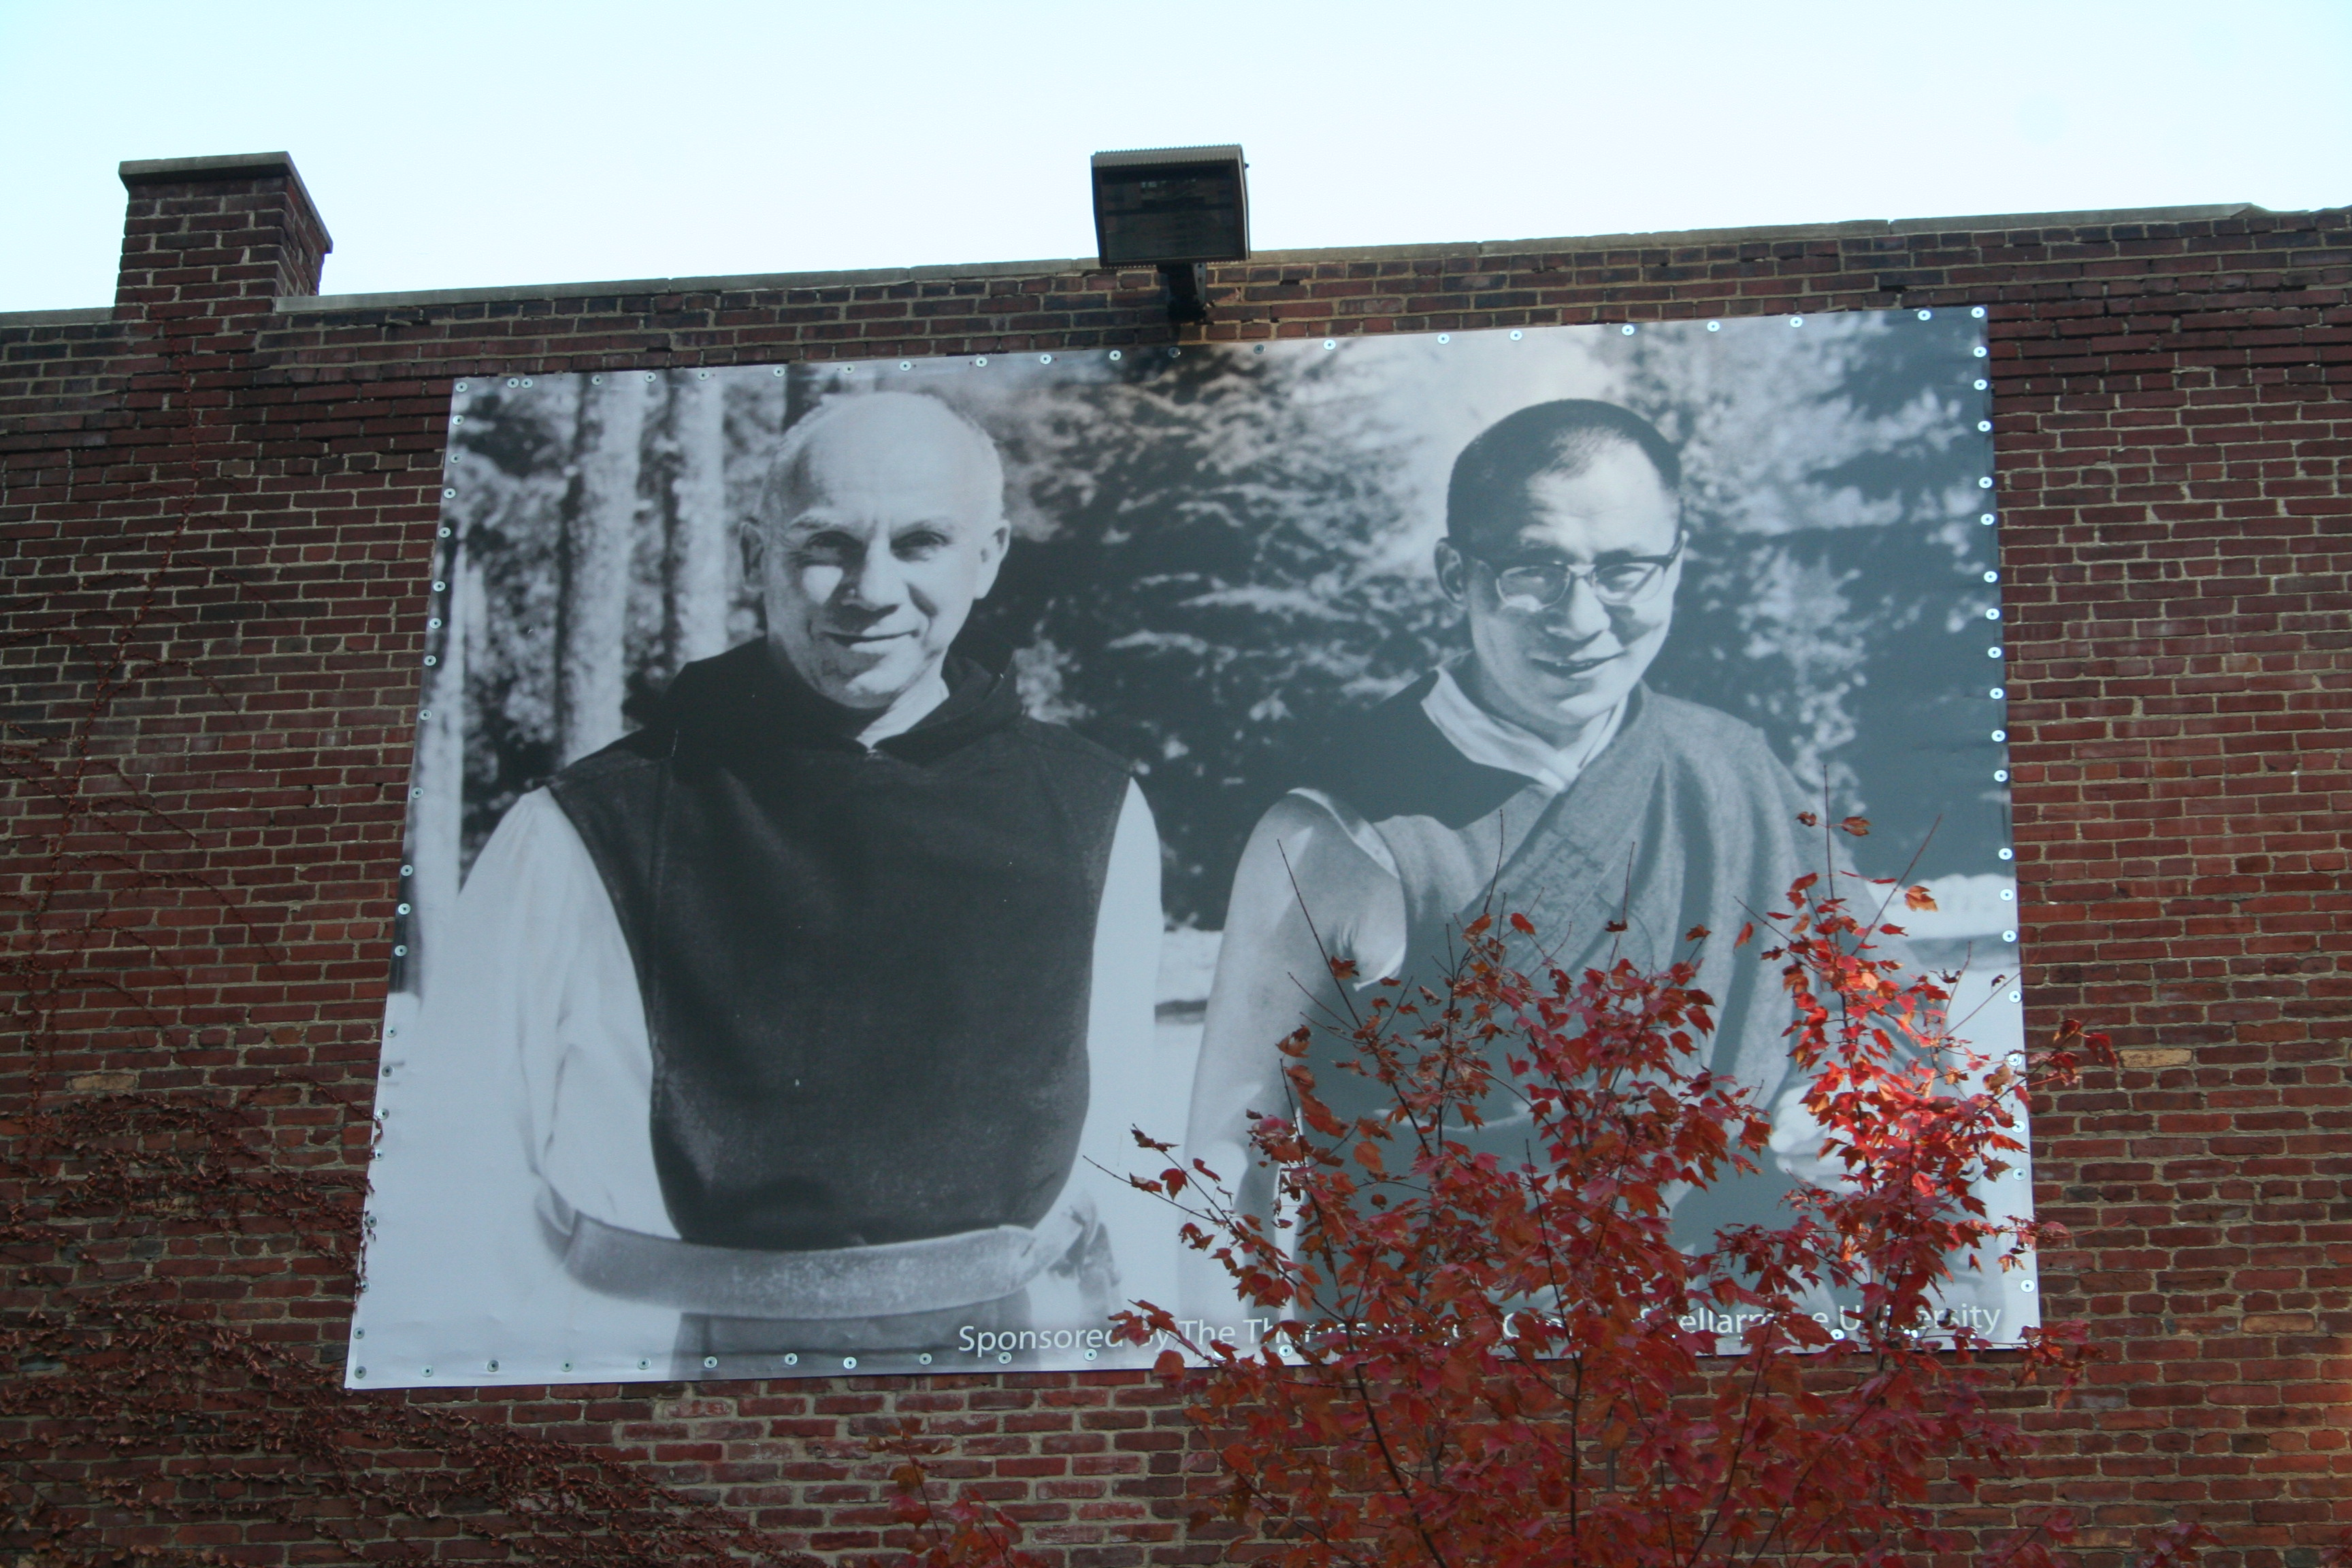 ... Louisville of Thomas Merton and the Dalai Lama (Lori Erickson photo